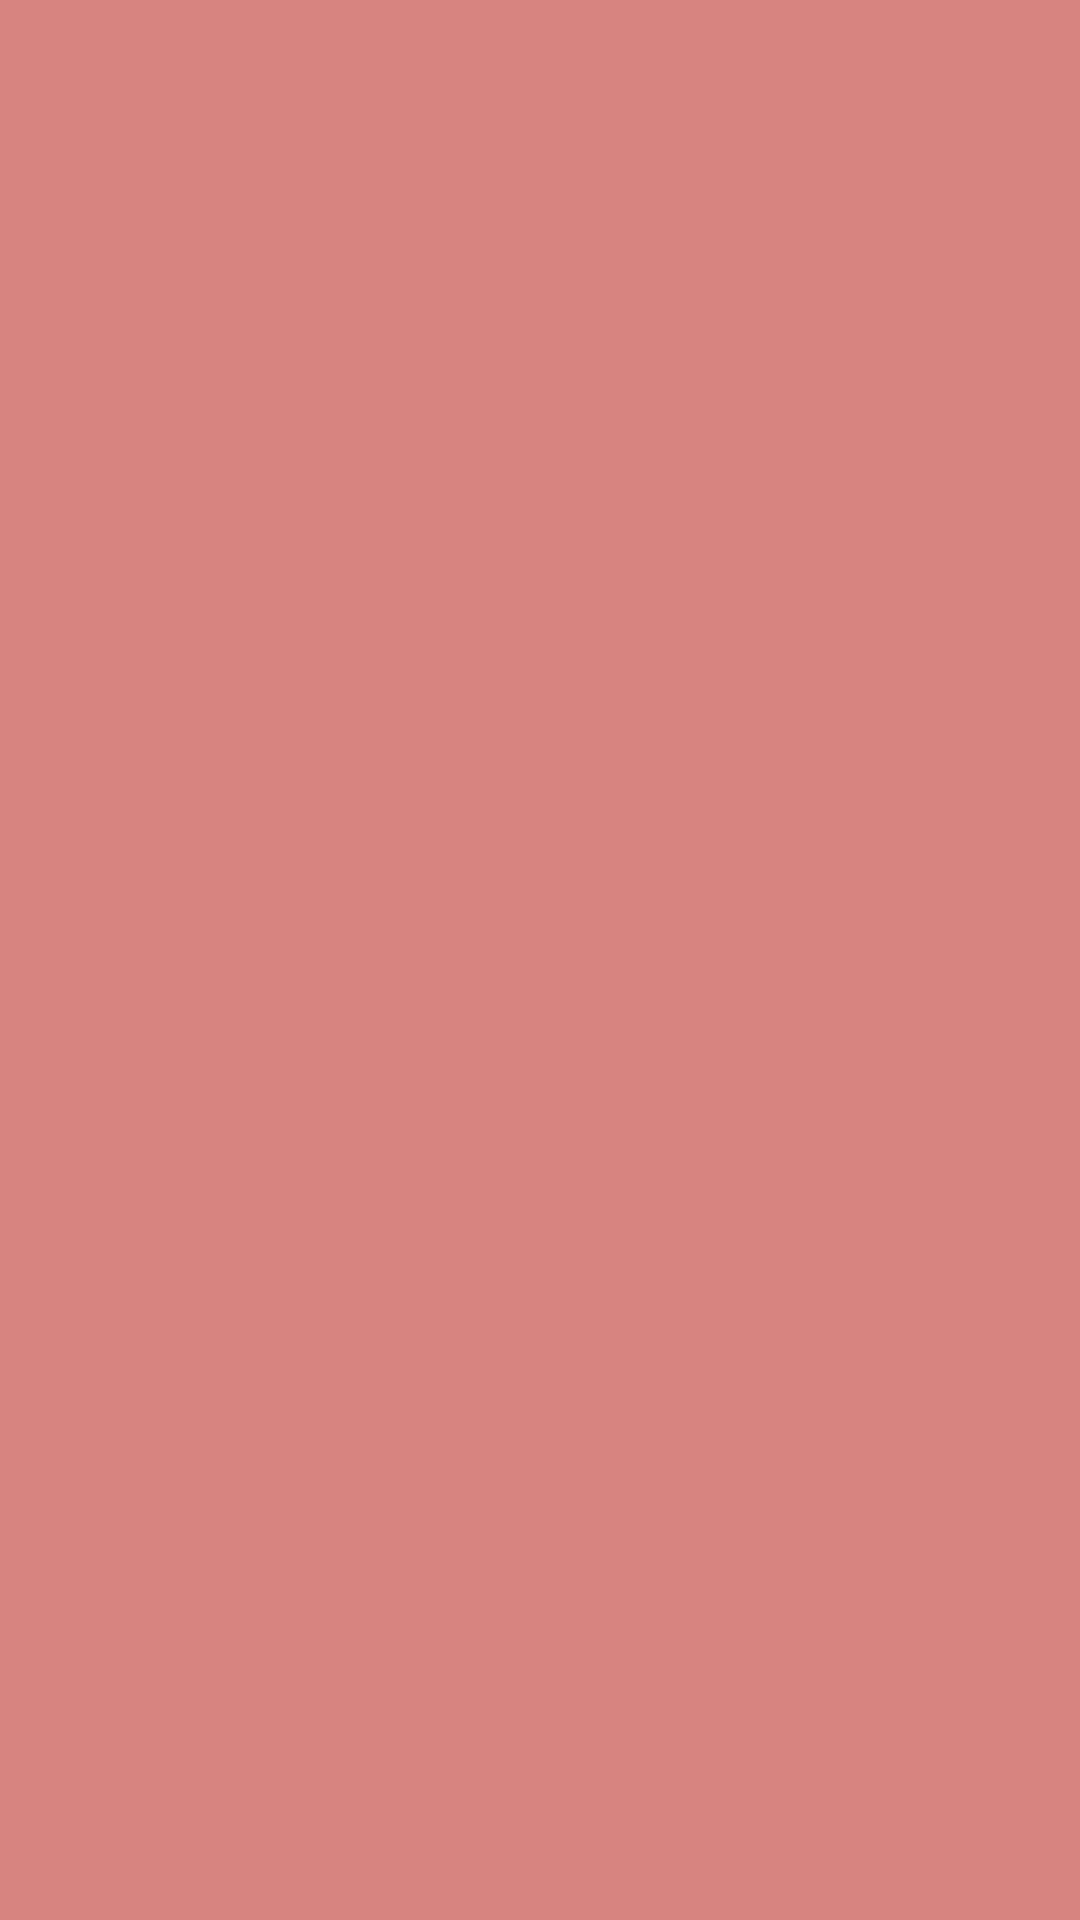 1080x1920 New York Pink Solid Color Background